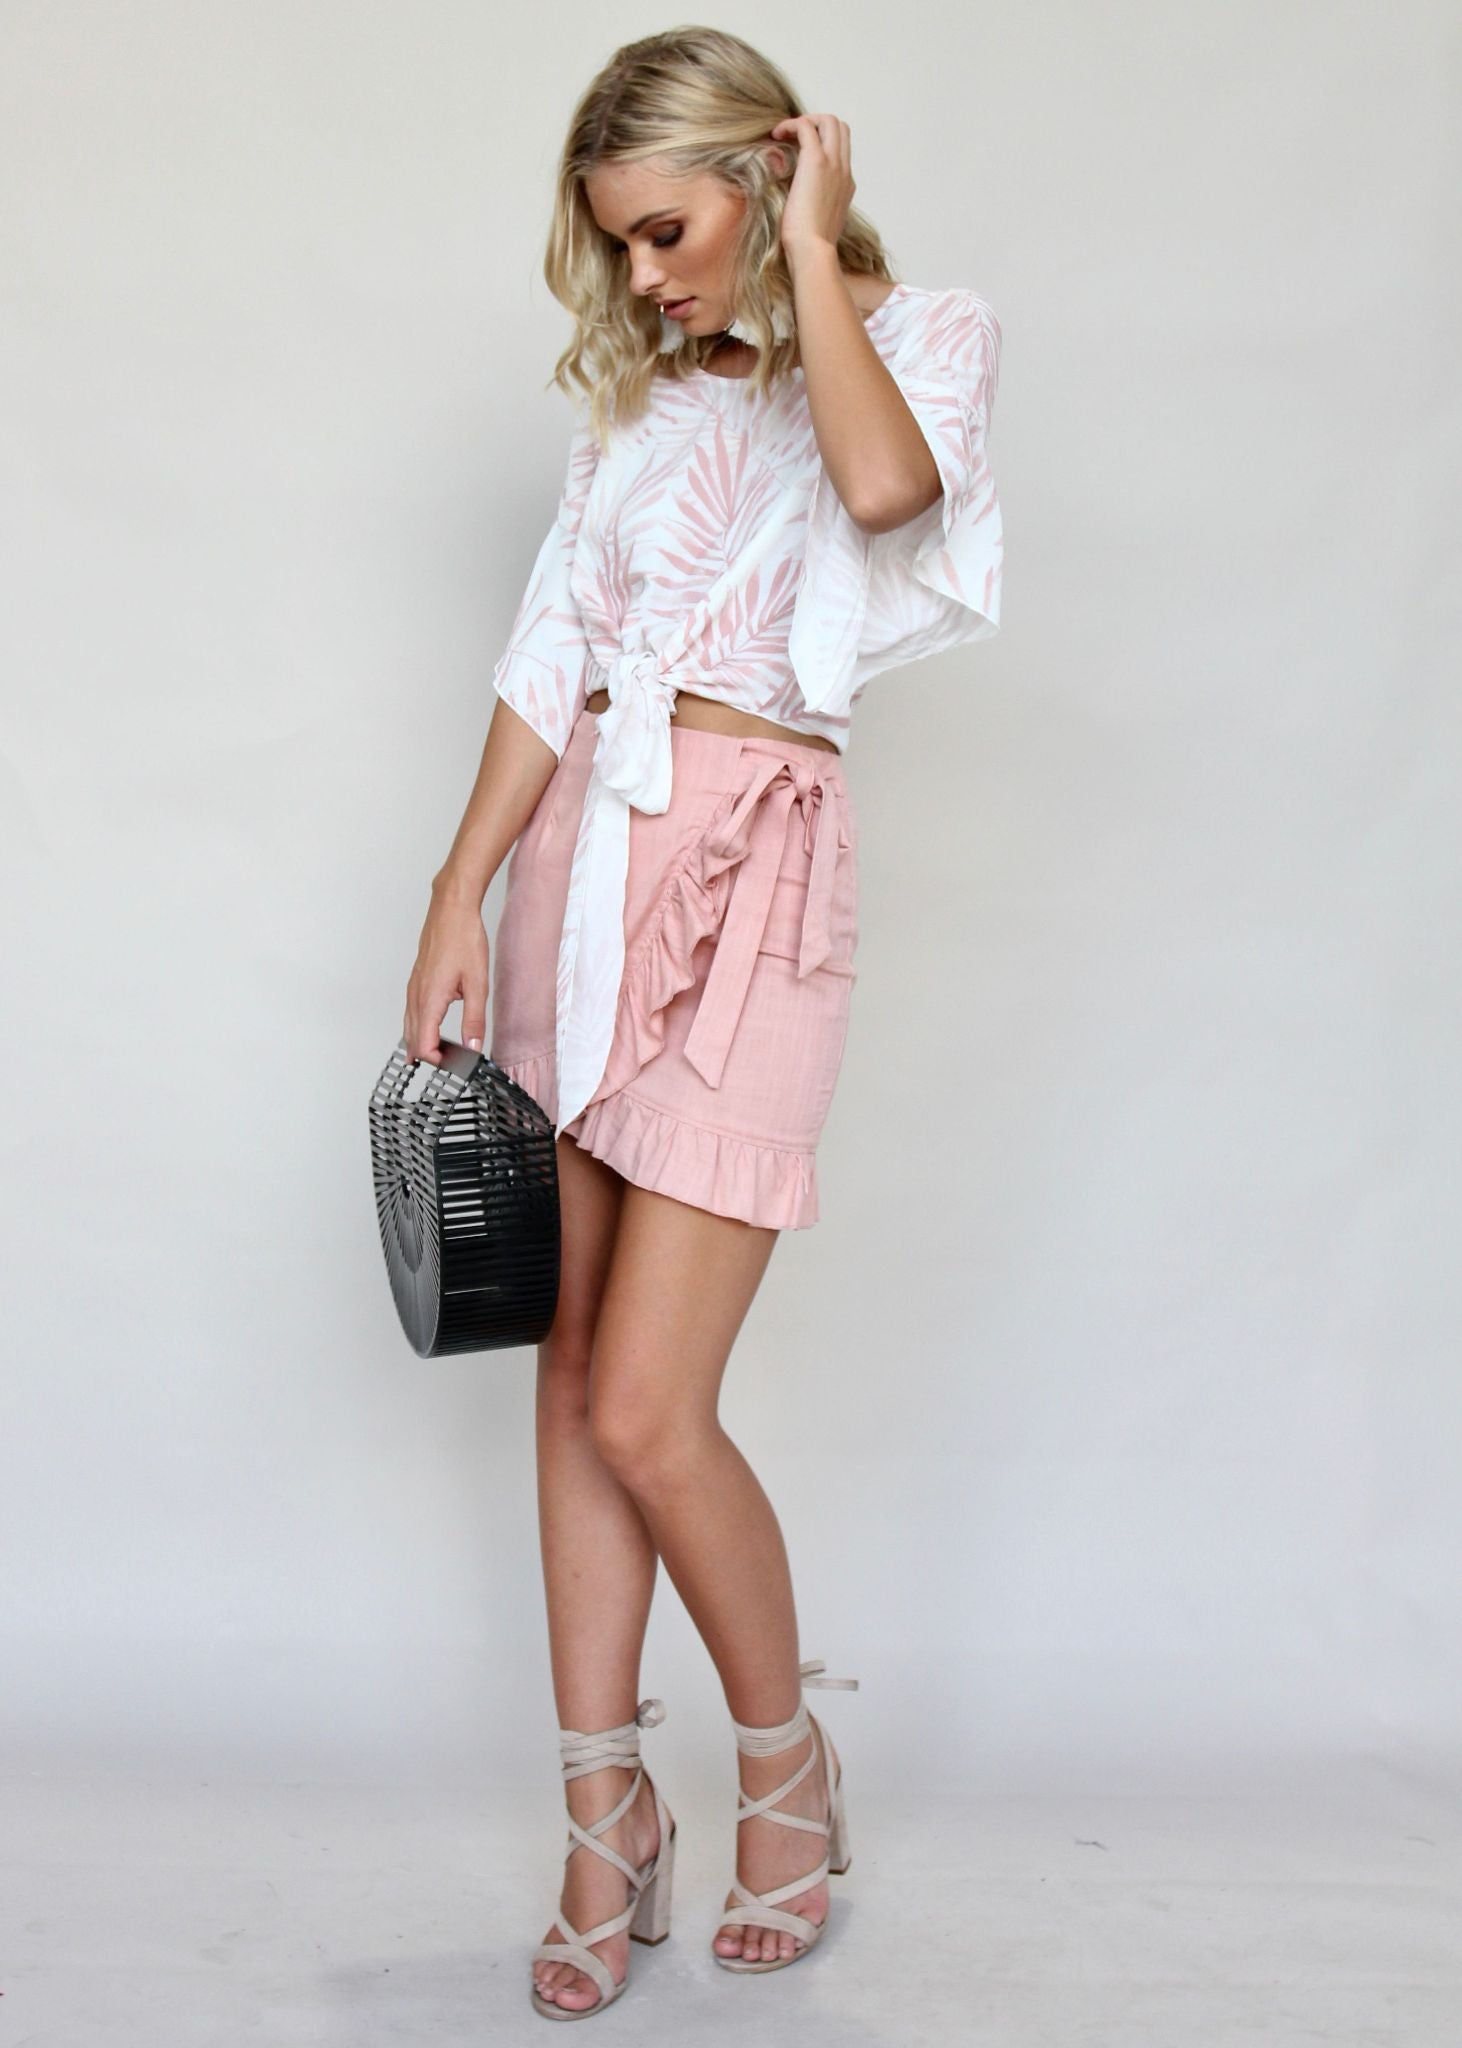 Above All Skirt - Peachy